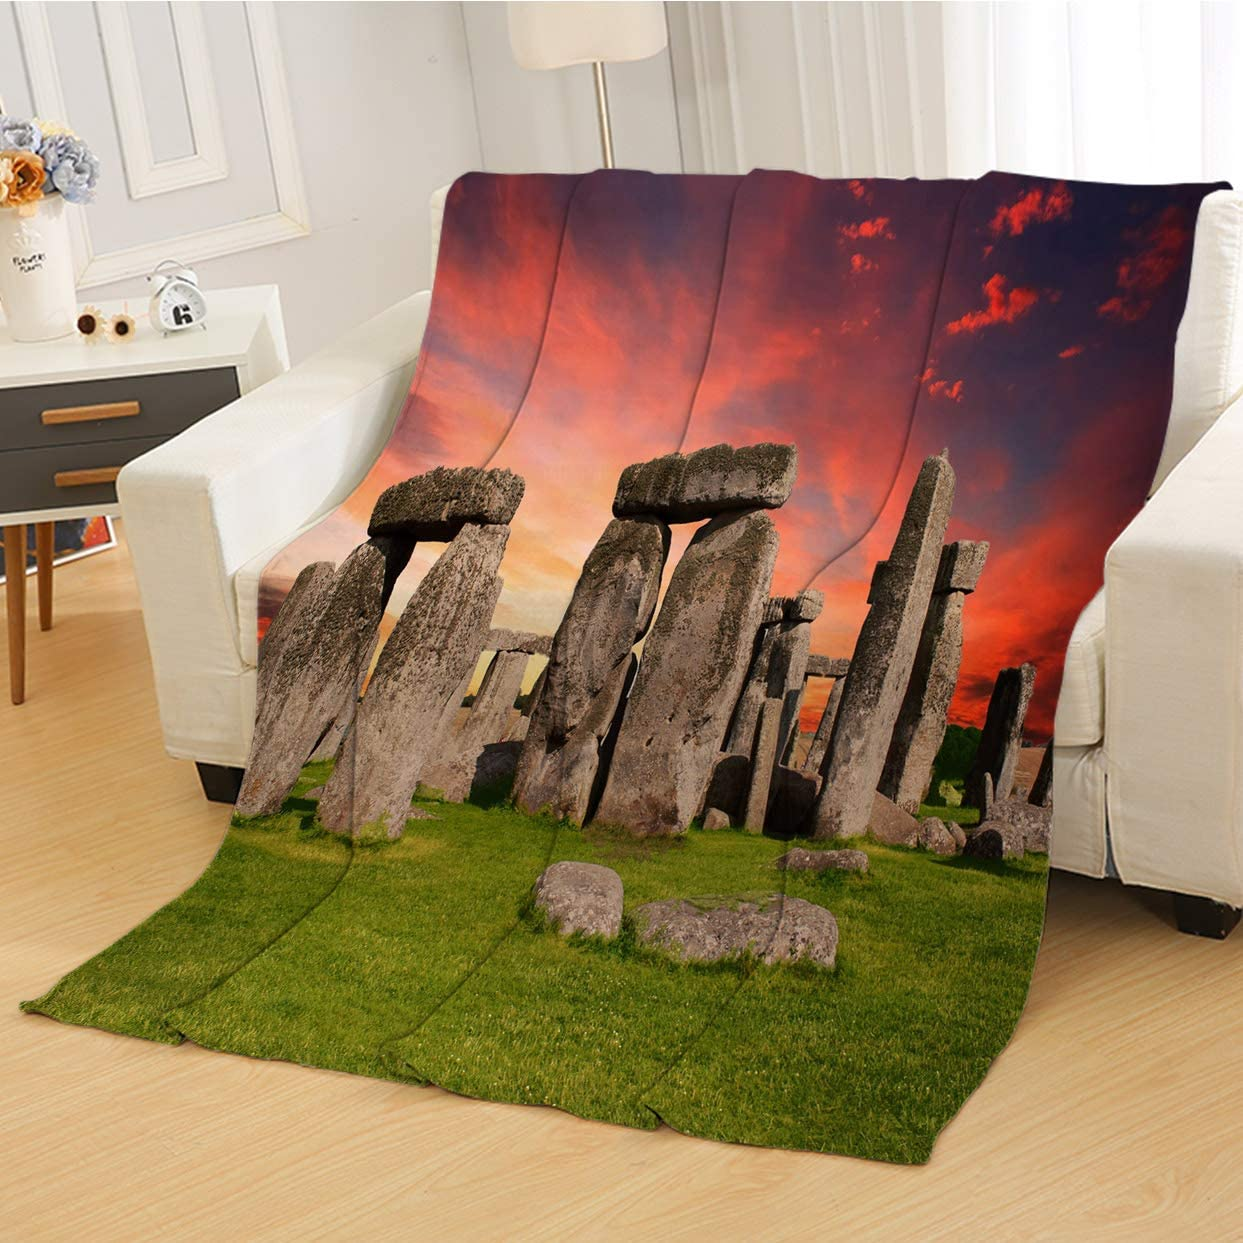 RLDSESS Sunset Warm Baby Blanket, All Season Blanket,Stonehenge Prehistoric Salisbury England Wiltshire Milestone Boulders Sunset Red Gray,Soft Weighted Blanket,Baby Size: 31Wx47L inch